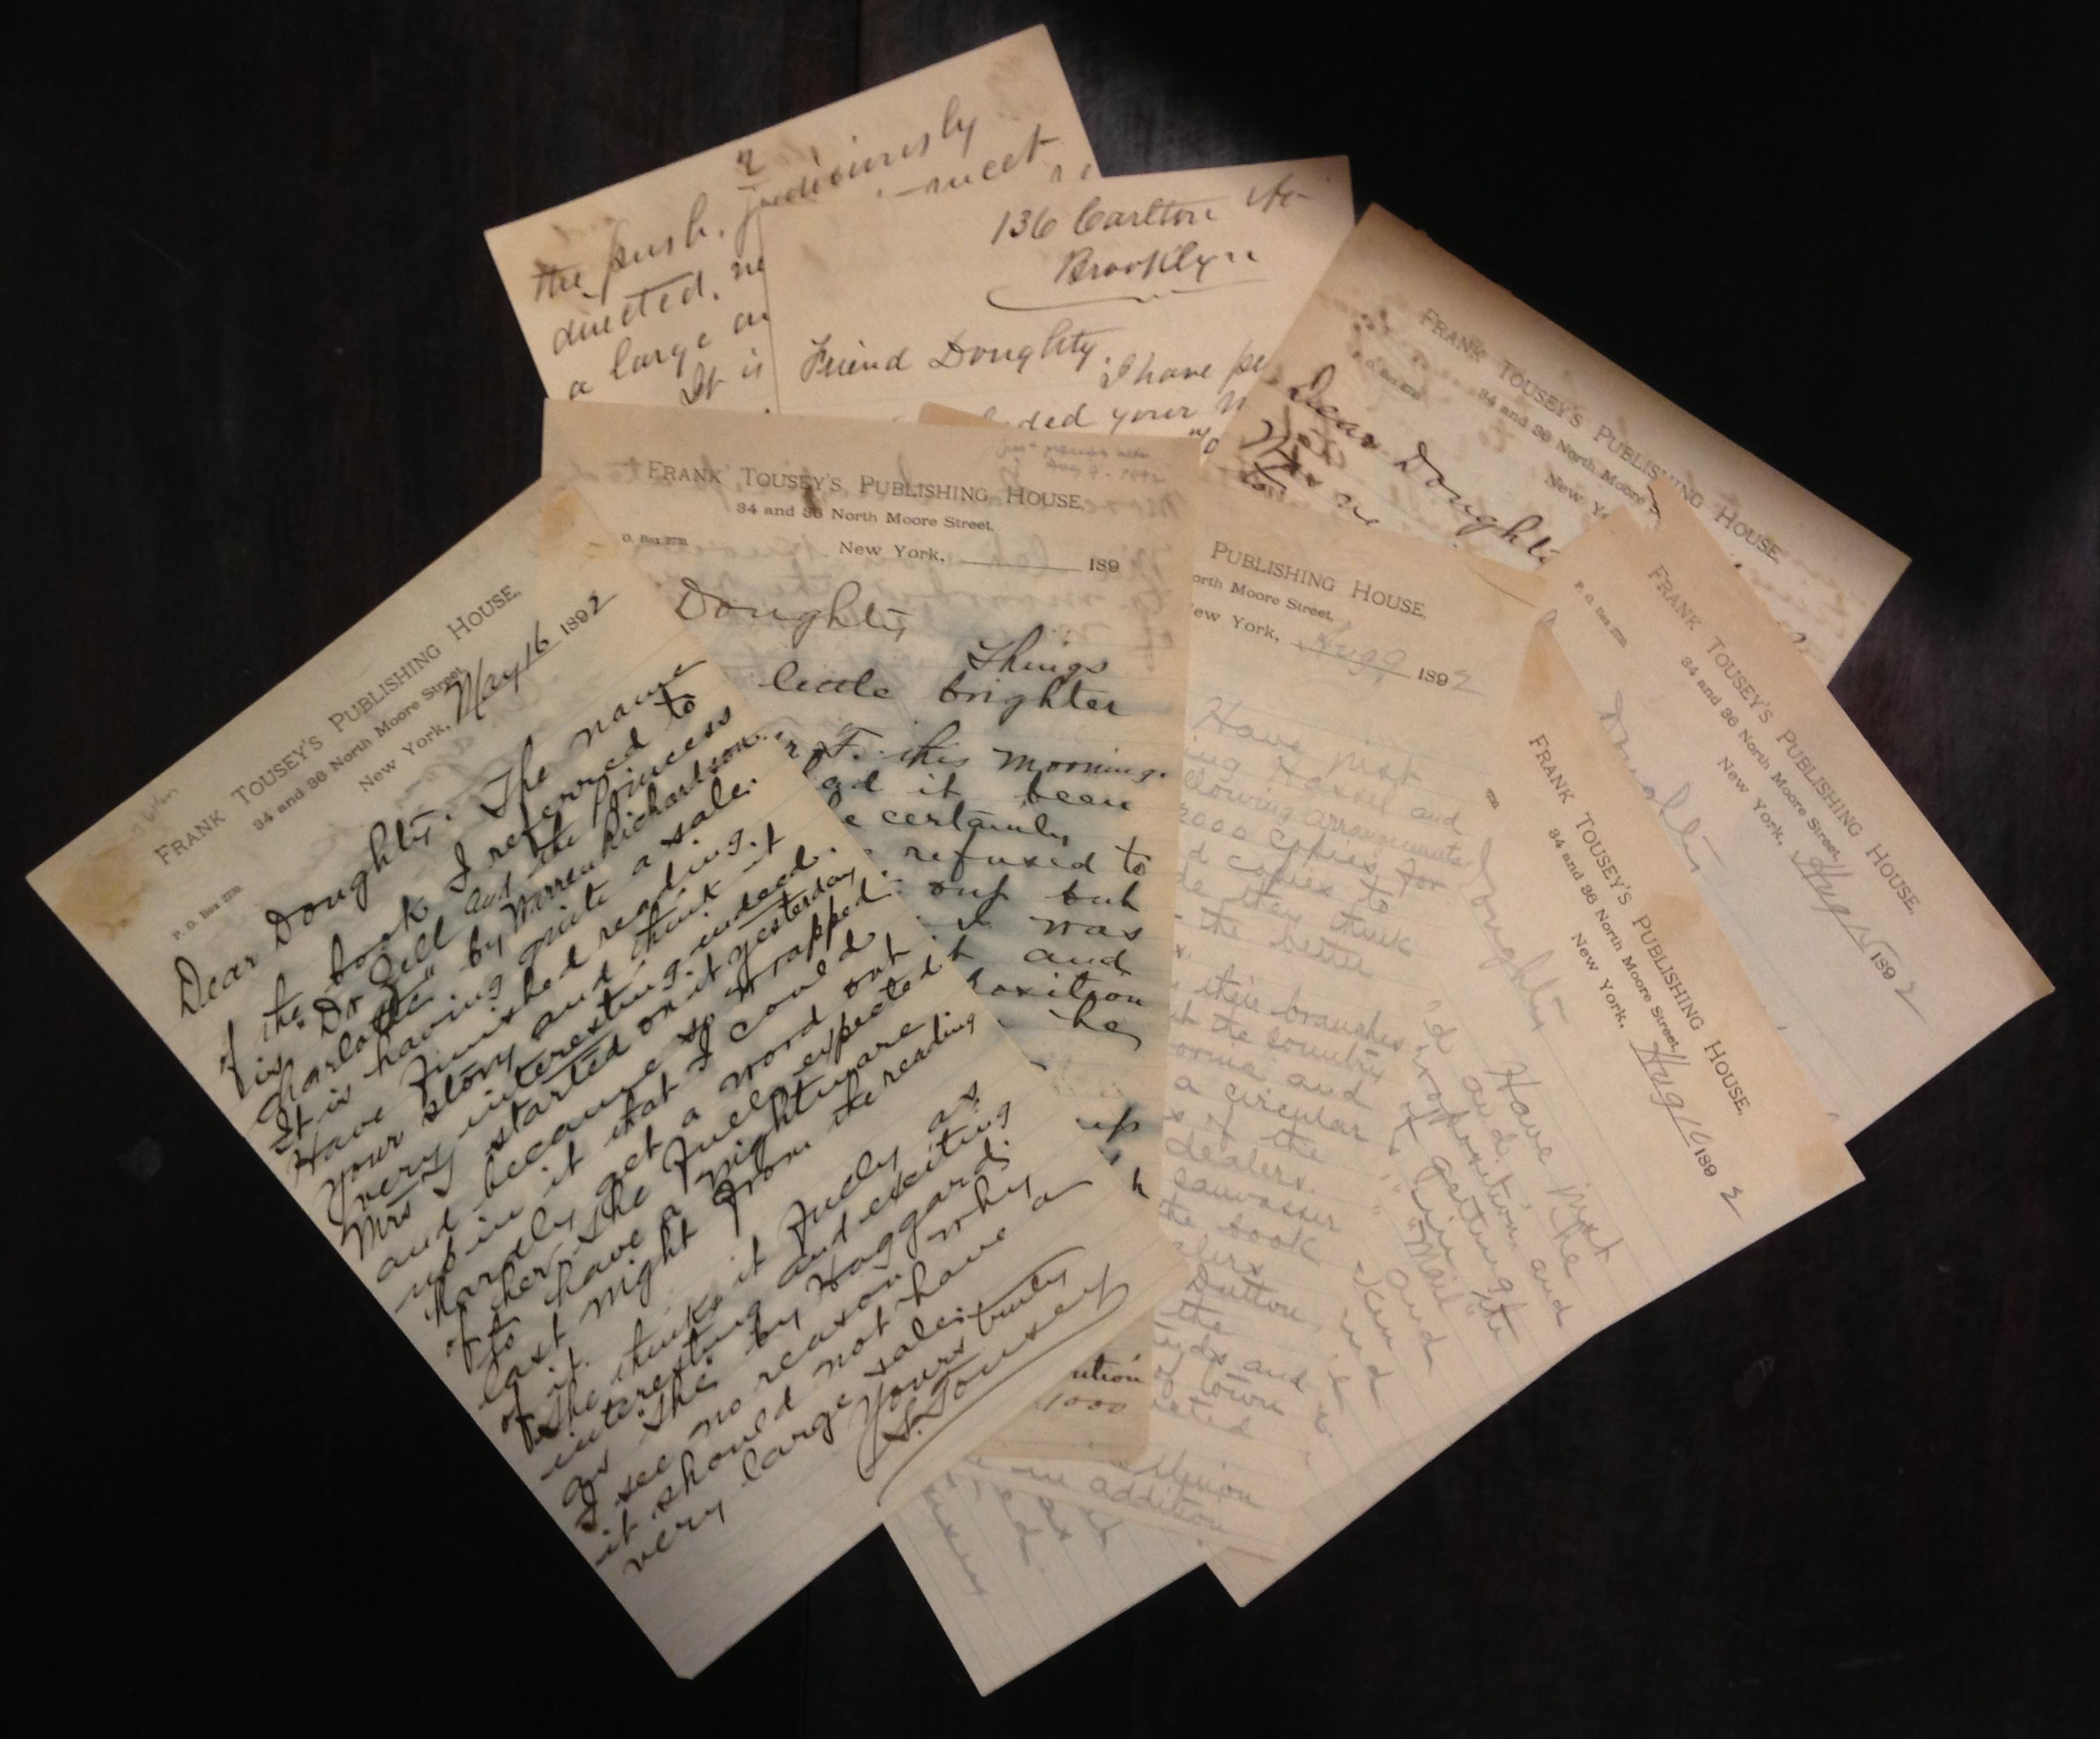 What, no book tour?  Francis W. Doughty and his agent Sinclair Tousey scheme to place copies of Doughty's science fiction novel, Mirrikh, or, a woman from Mars (1894) in the hands of eager readers.     (MSS 15790)